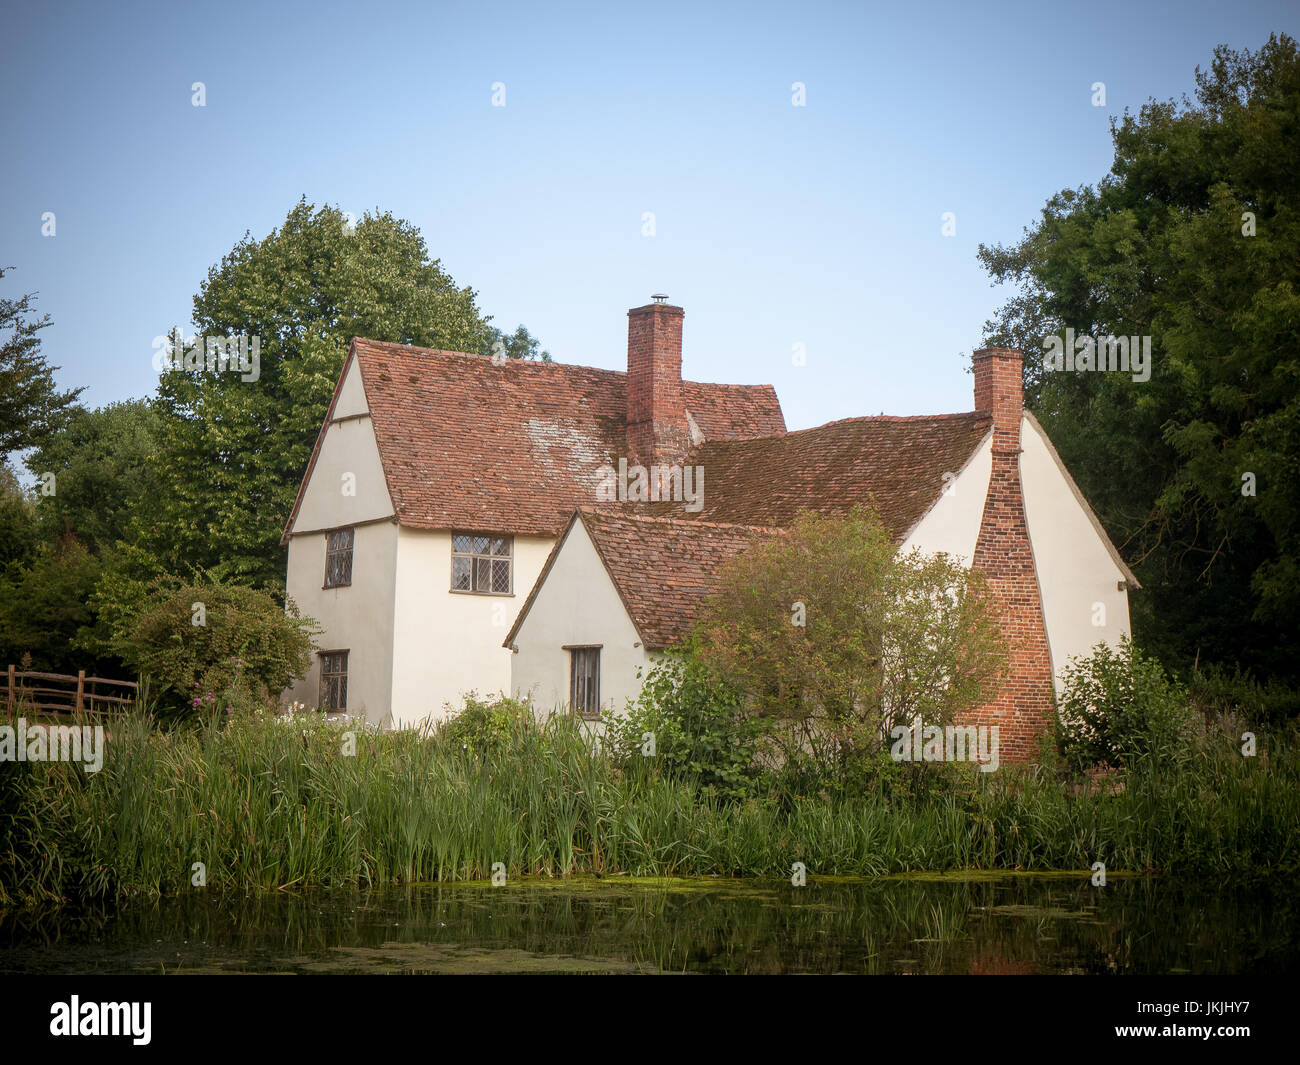 vintage impression of willy lotts' cottage on a summer's day in constable country; Suffolk; England; UK - Stock Image